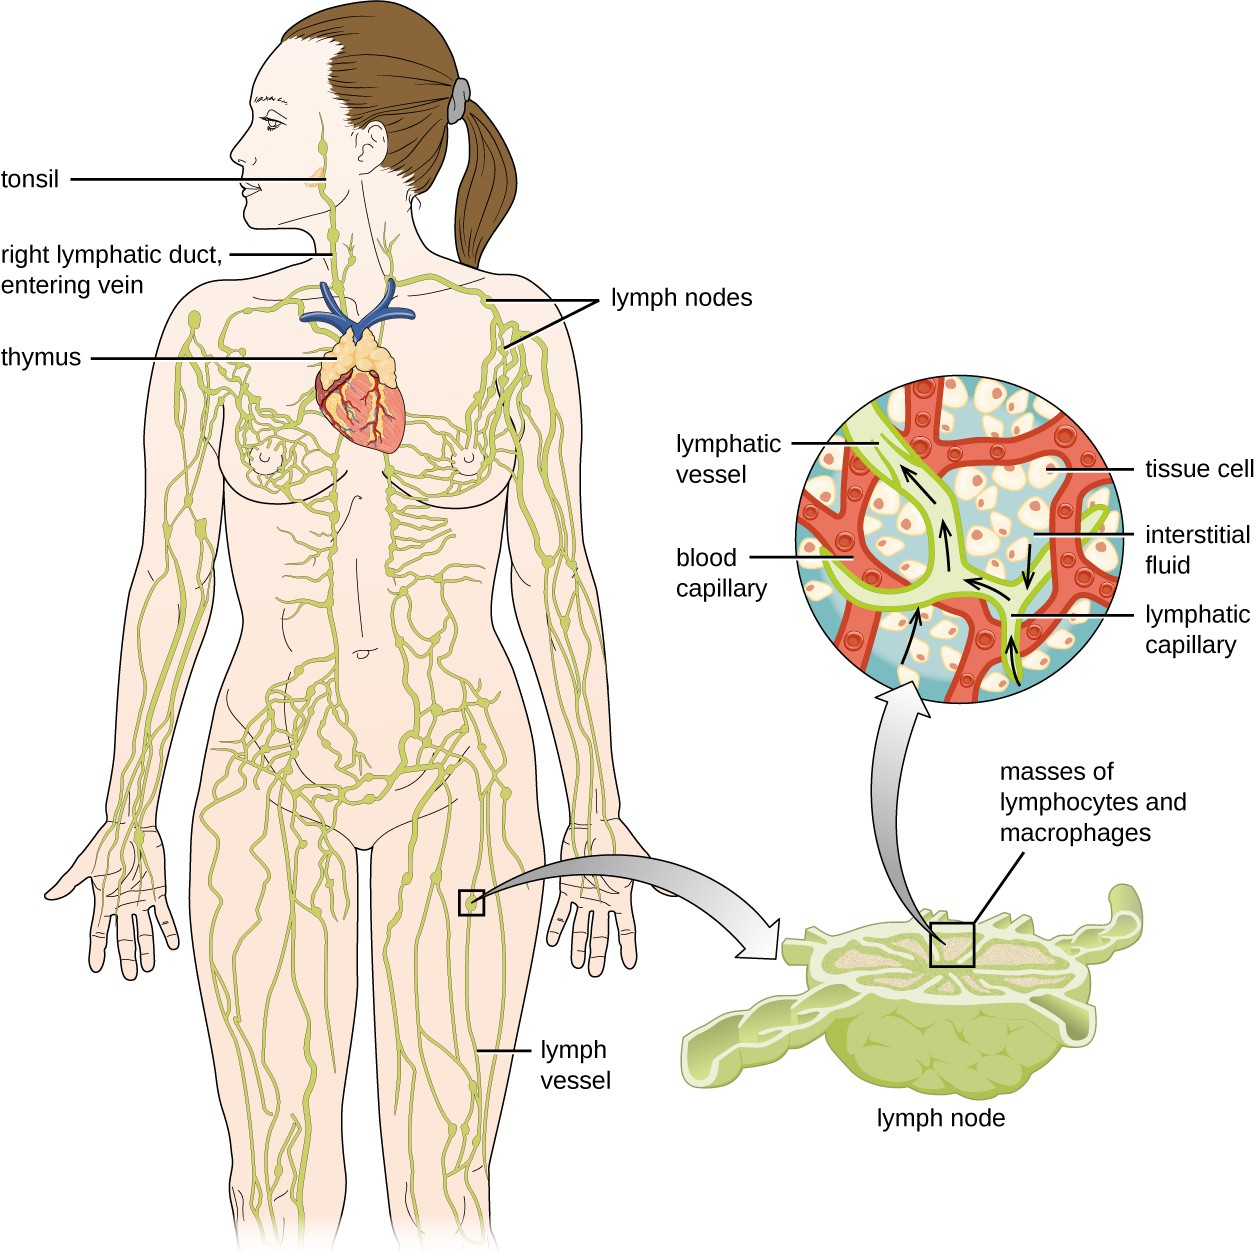 hight resolution of diagram of the lymphatic system lymph notes are swellings on tubes called lymph vessels